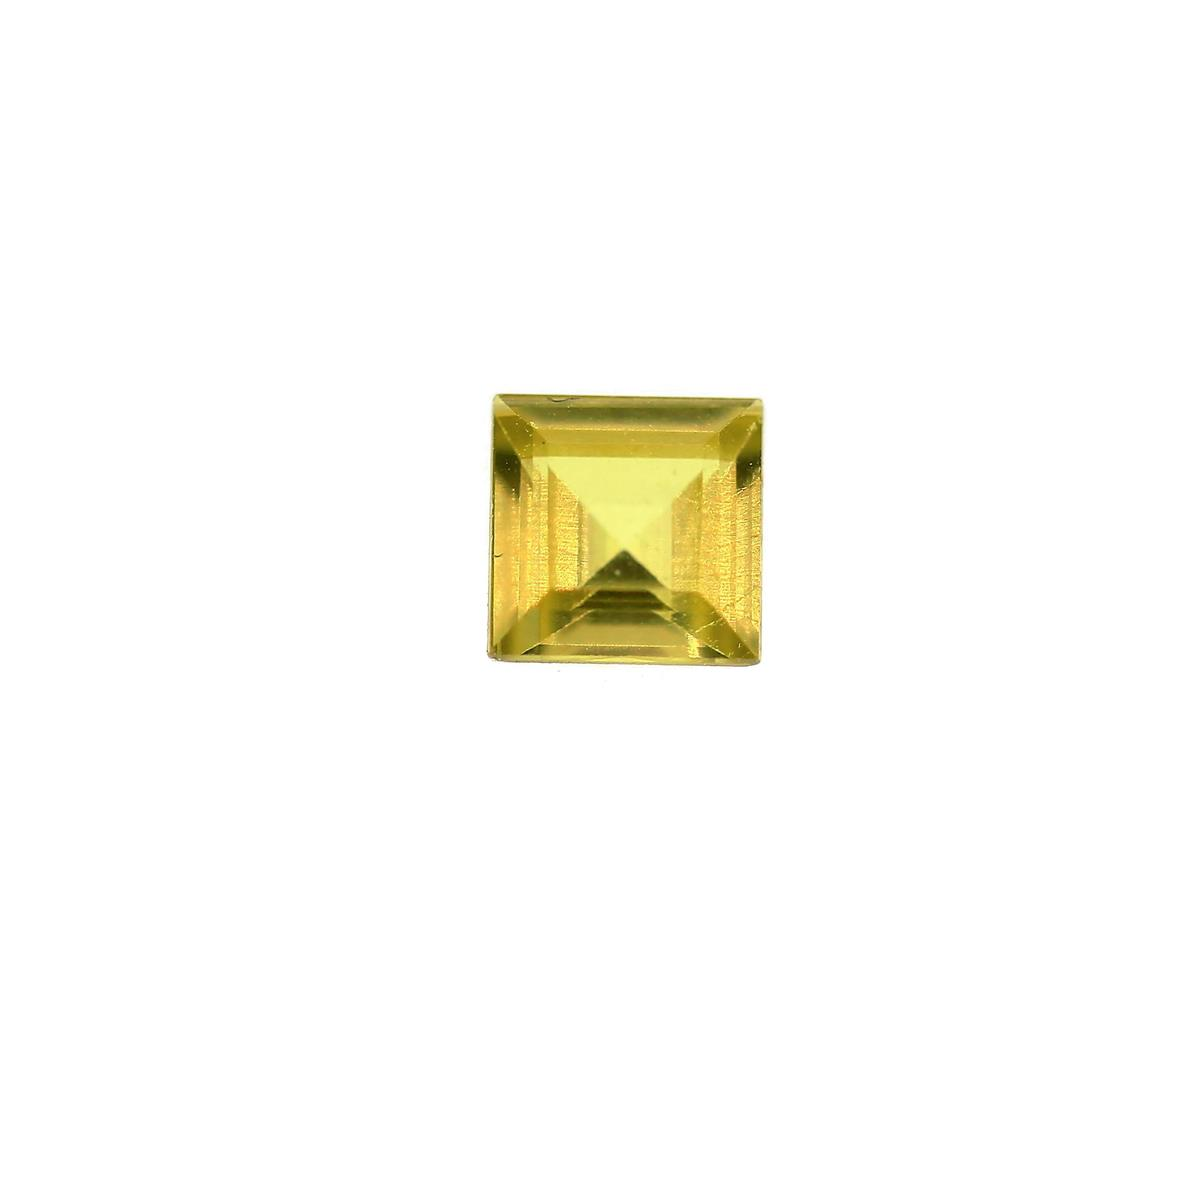 Synthetic Peridot 5mm Square